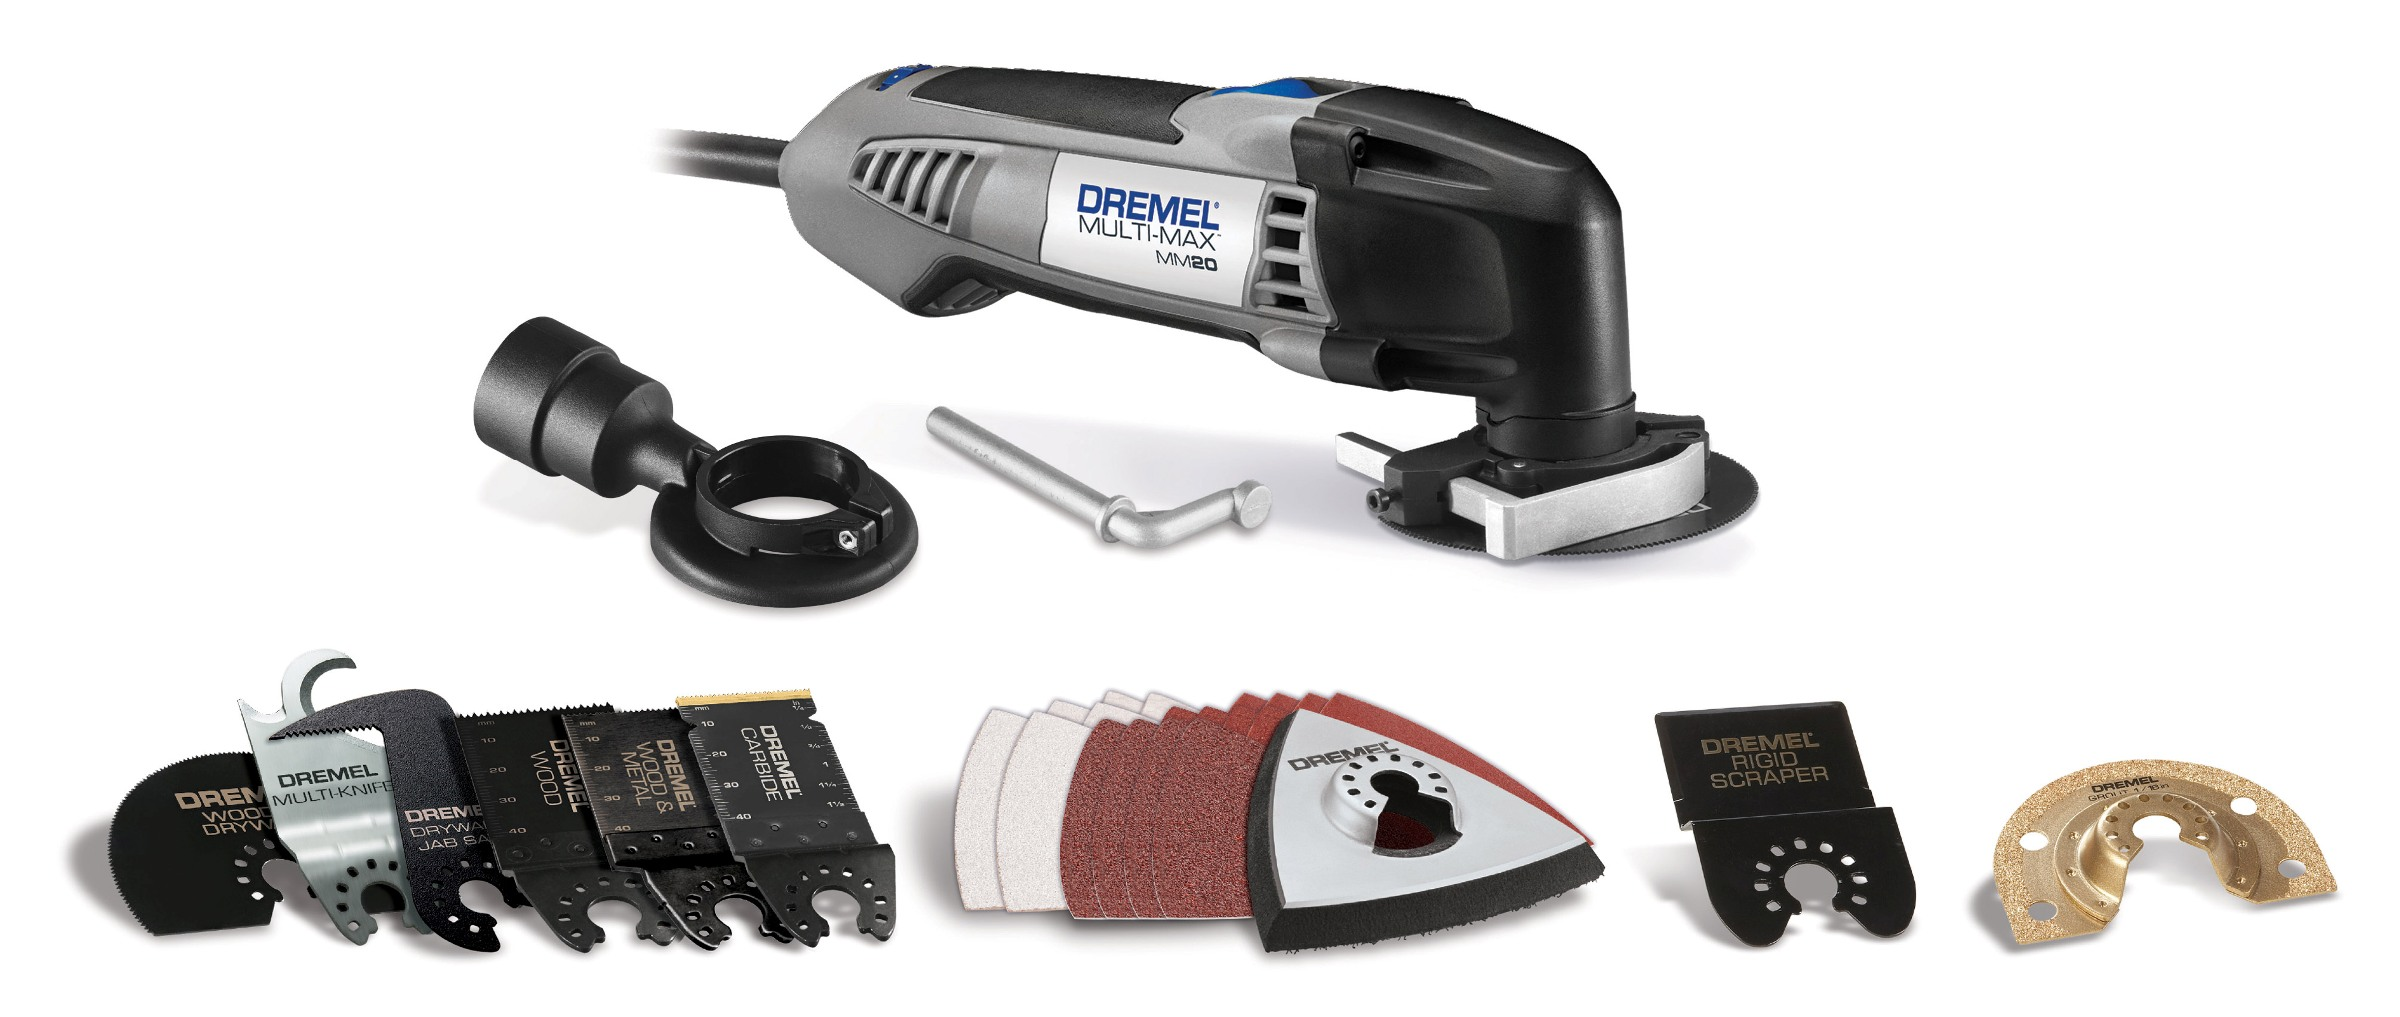 Dremel MM20-05 Multi-Max 2.3 Amp Corded Variable Speed Oscillating Multi-Tool Kit with 30... by Dremel